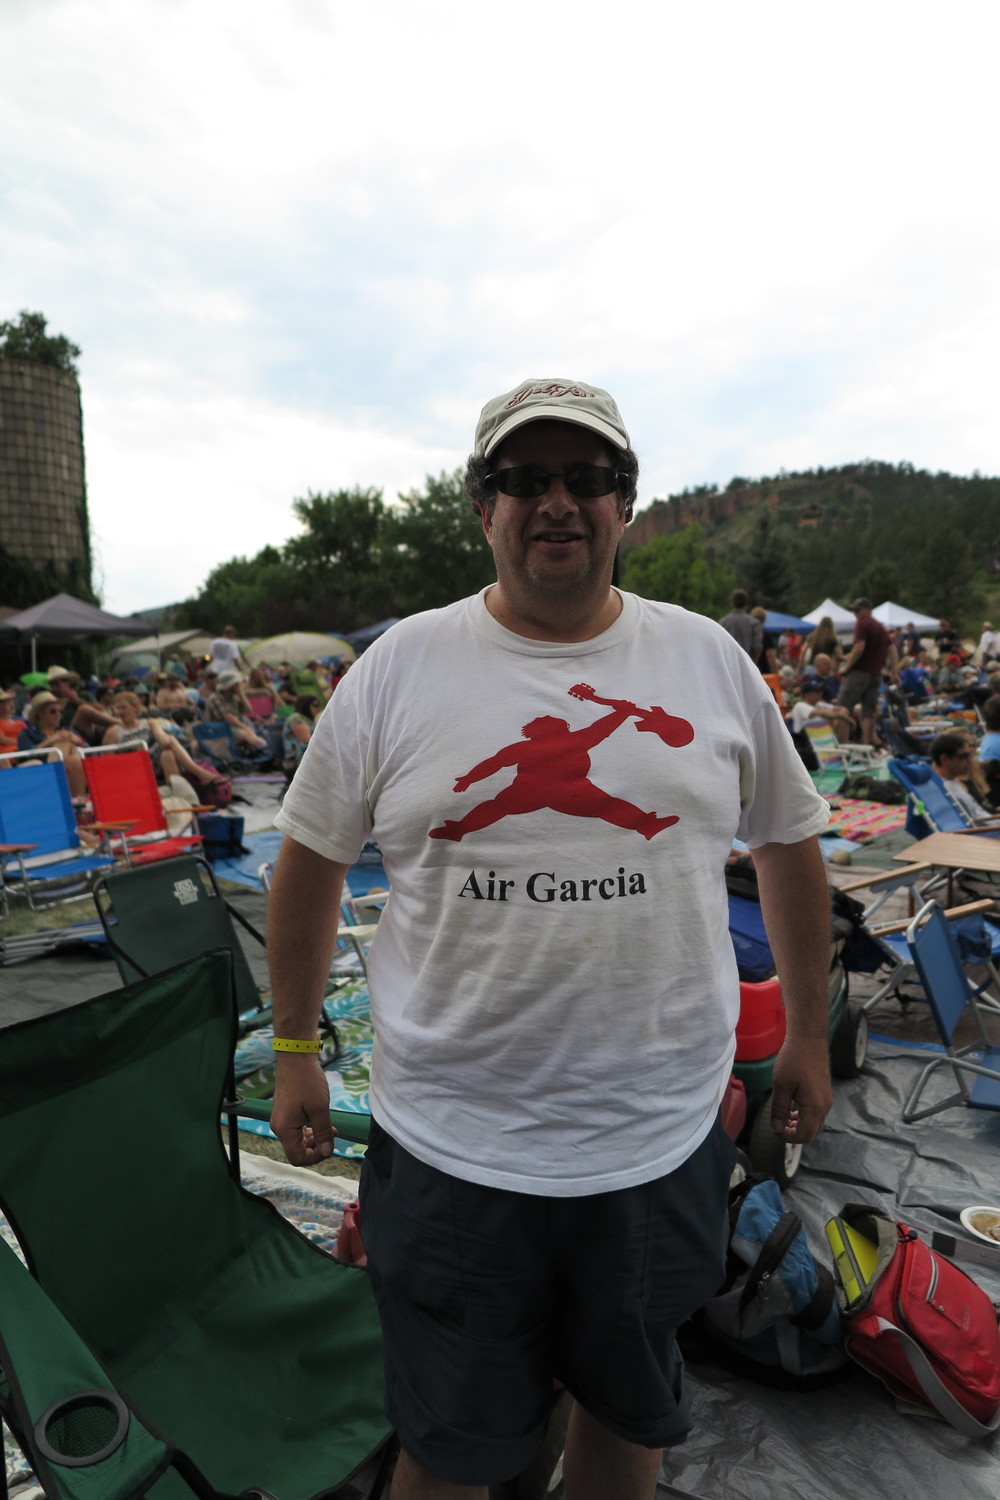 Air Garcia - Sweet T-Shirt.JPG